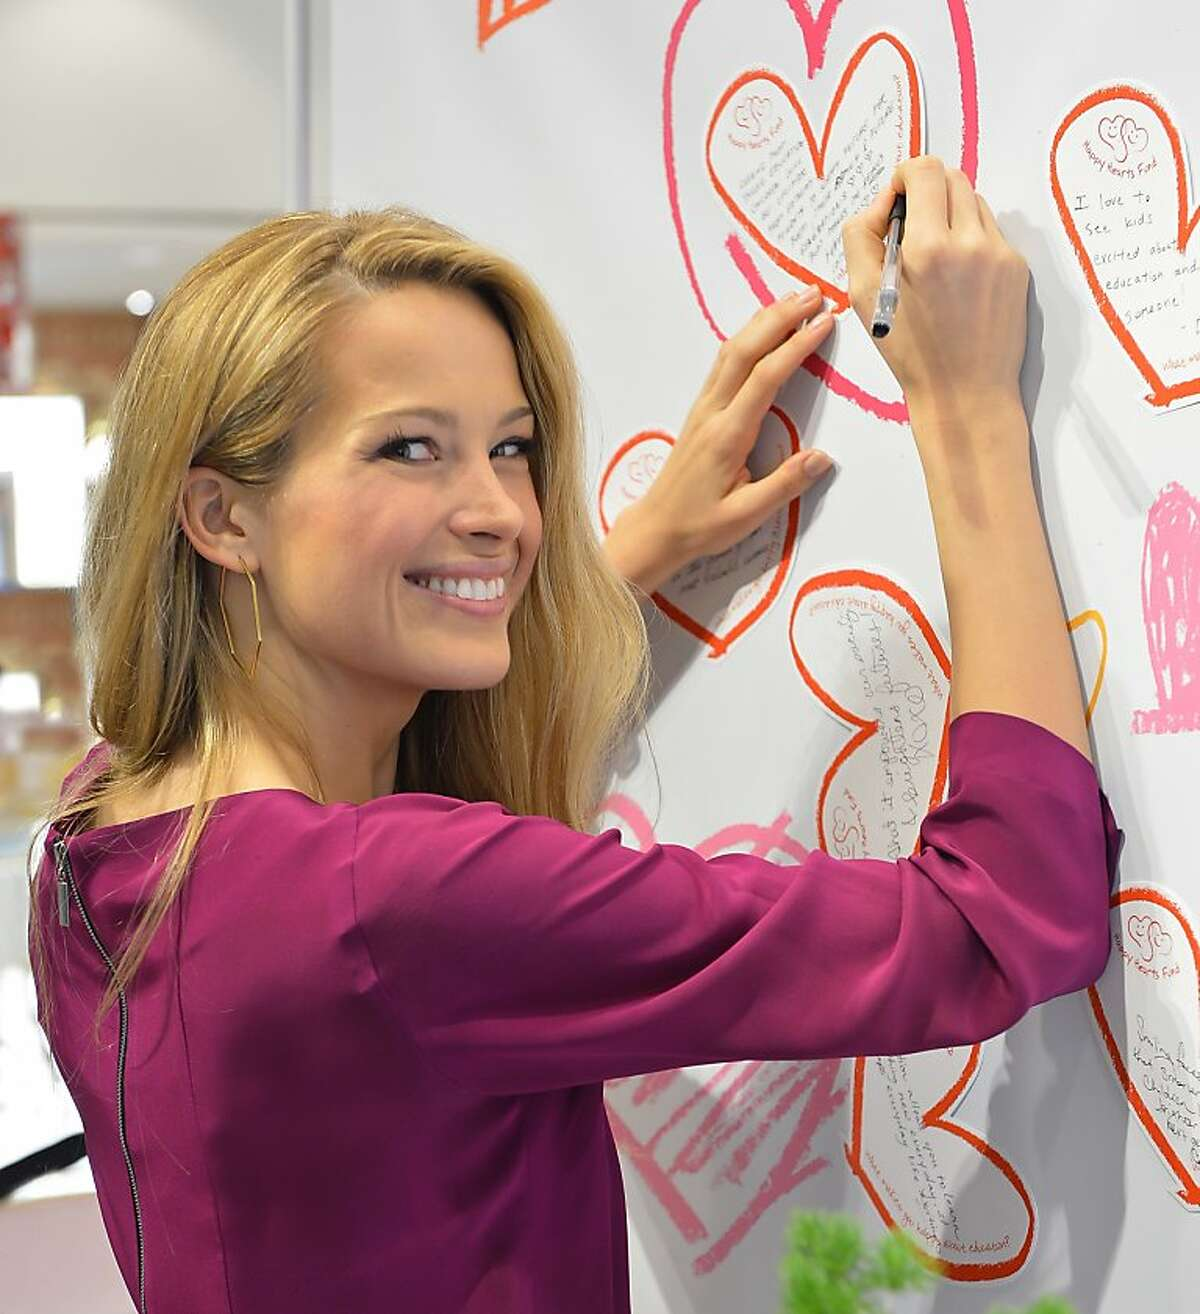 """Petra Nemcova signing bottle of Clinique's Happy Heart fragrance at the celebration of the new partnership with Clinique and her global charity, Happy Hearts Fund at Macy's Union Square on November 30, 2012 in San Francisco, CA. SAN FRANCISCO, CA - NOVEMBER 30: Petra Nemcova signs the Clinique """"Happy Heart"""" Wall at the celebration of her new partnership with Clinique and her glabal charity, Happy Hearts Fund at Macy's Union Square on November 30, 2012 in San Francisco, California. (Photo by Steve Jennings/Getty Images For Clinique)"""